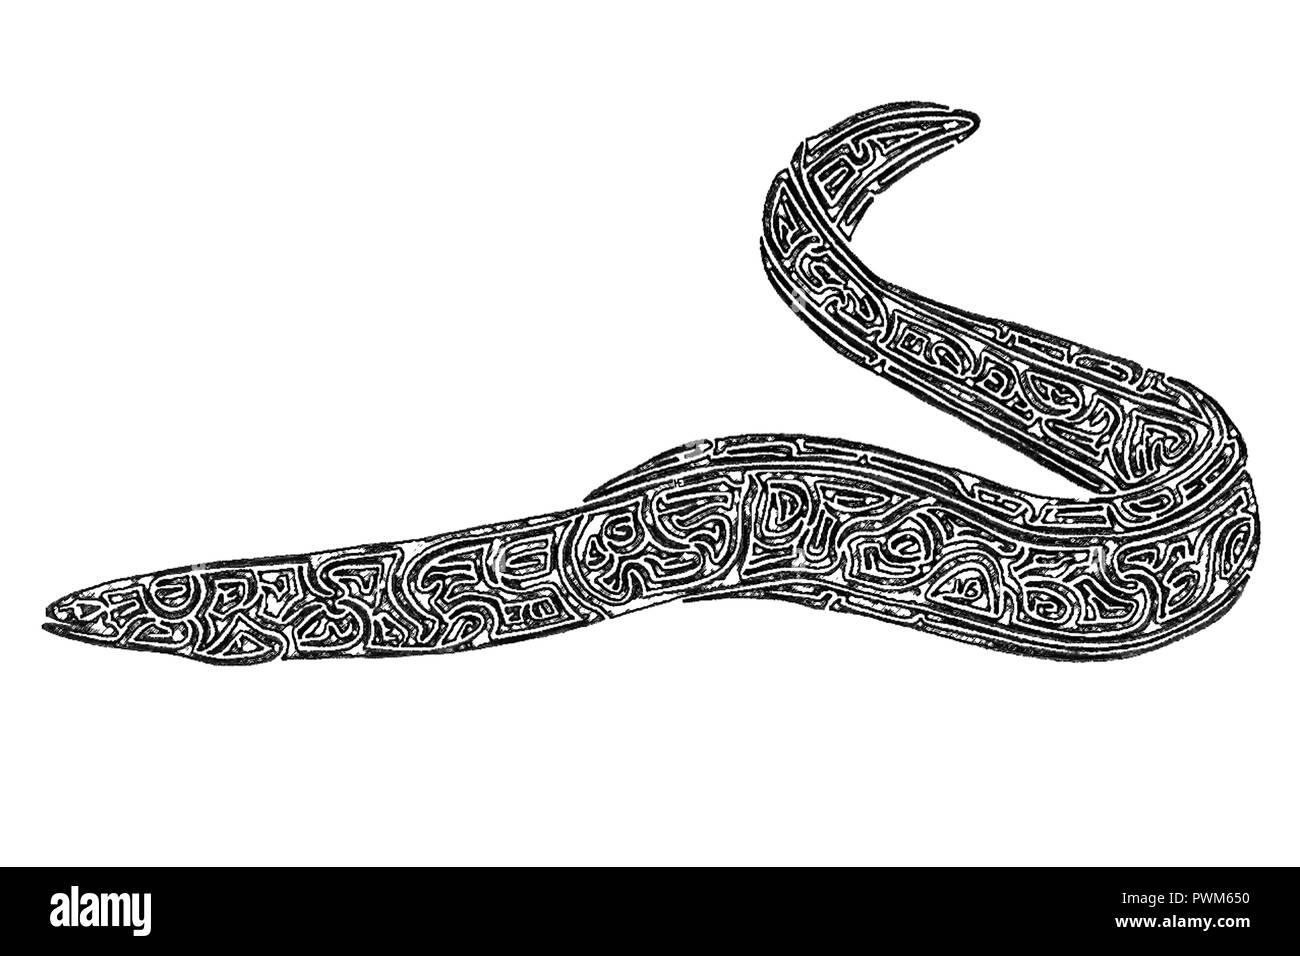 Illustration of an eel, black and white, drawing, maze lines - Stock Image